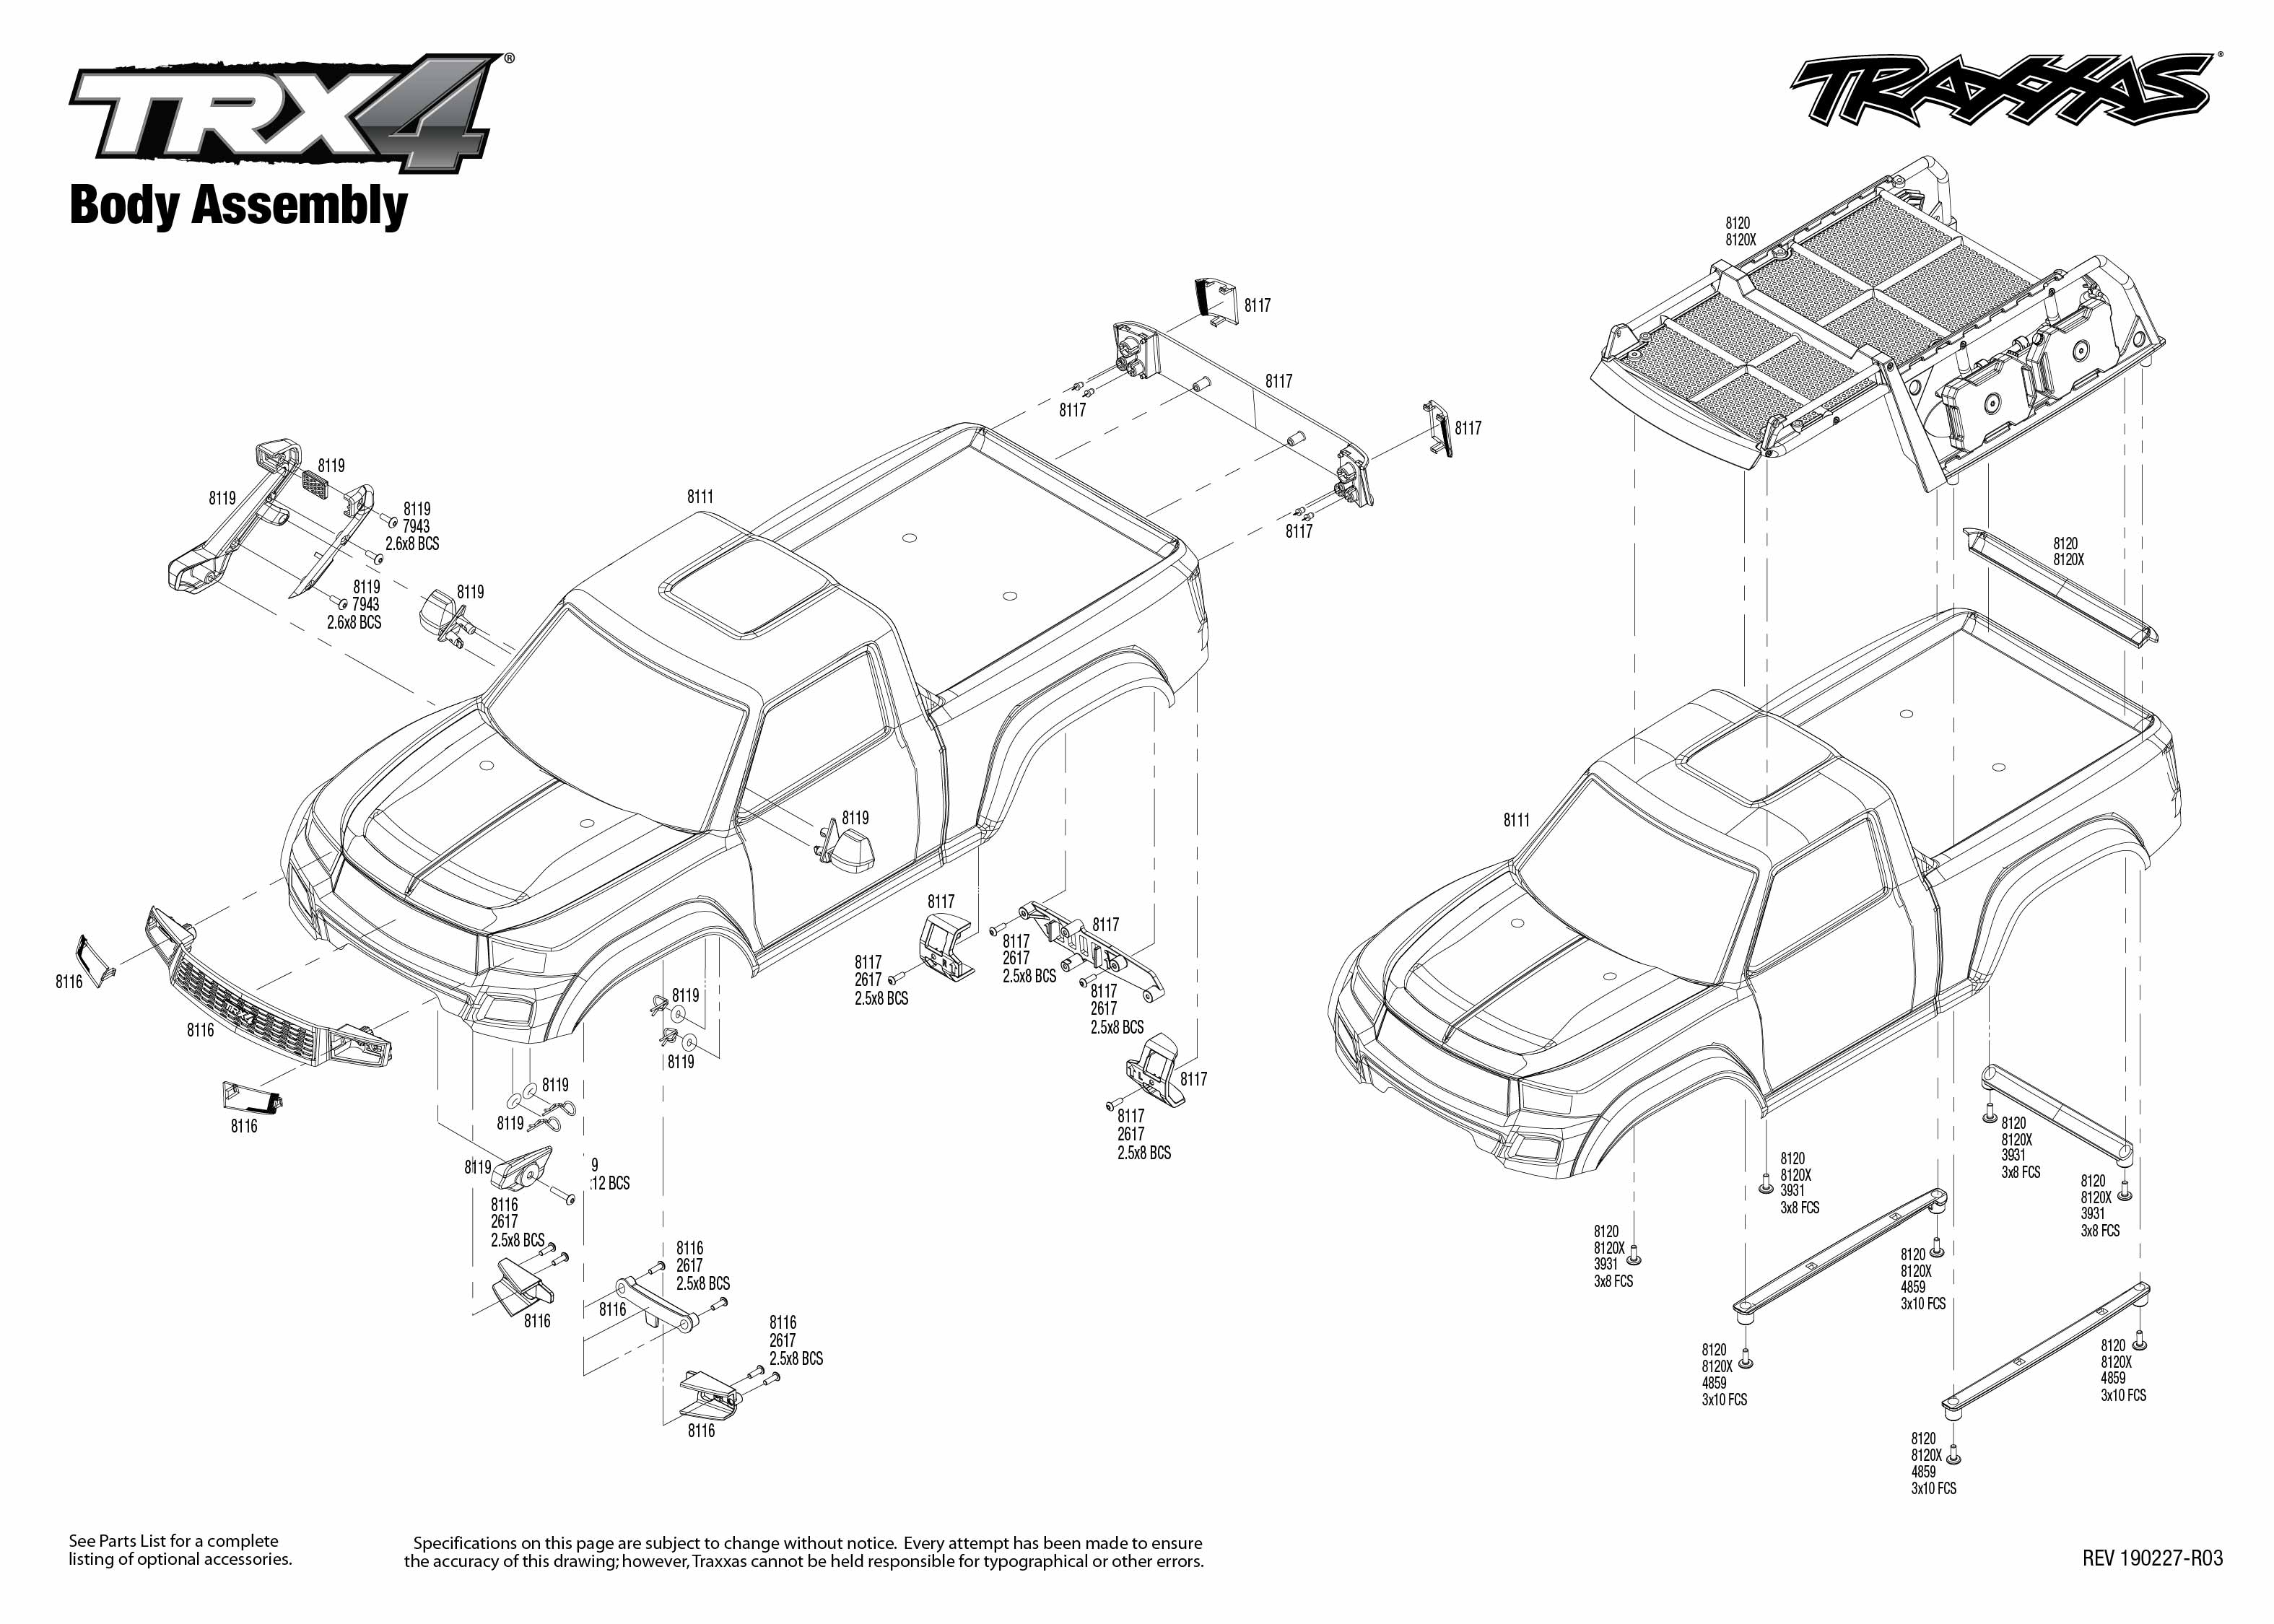 small resolution of exploded view traxxas trx 4 sport 1 10 kit body